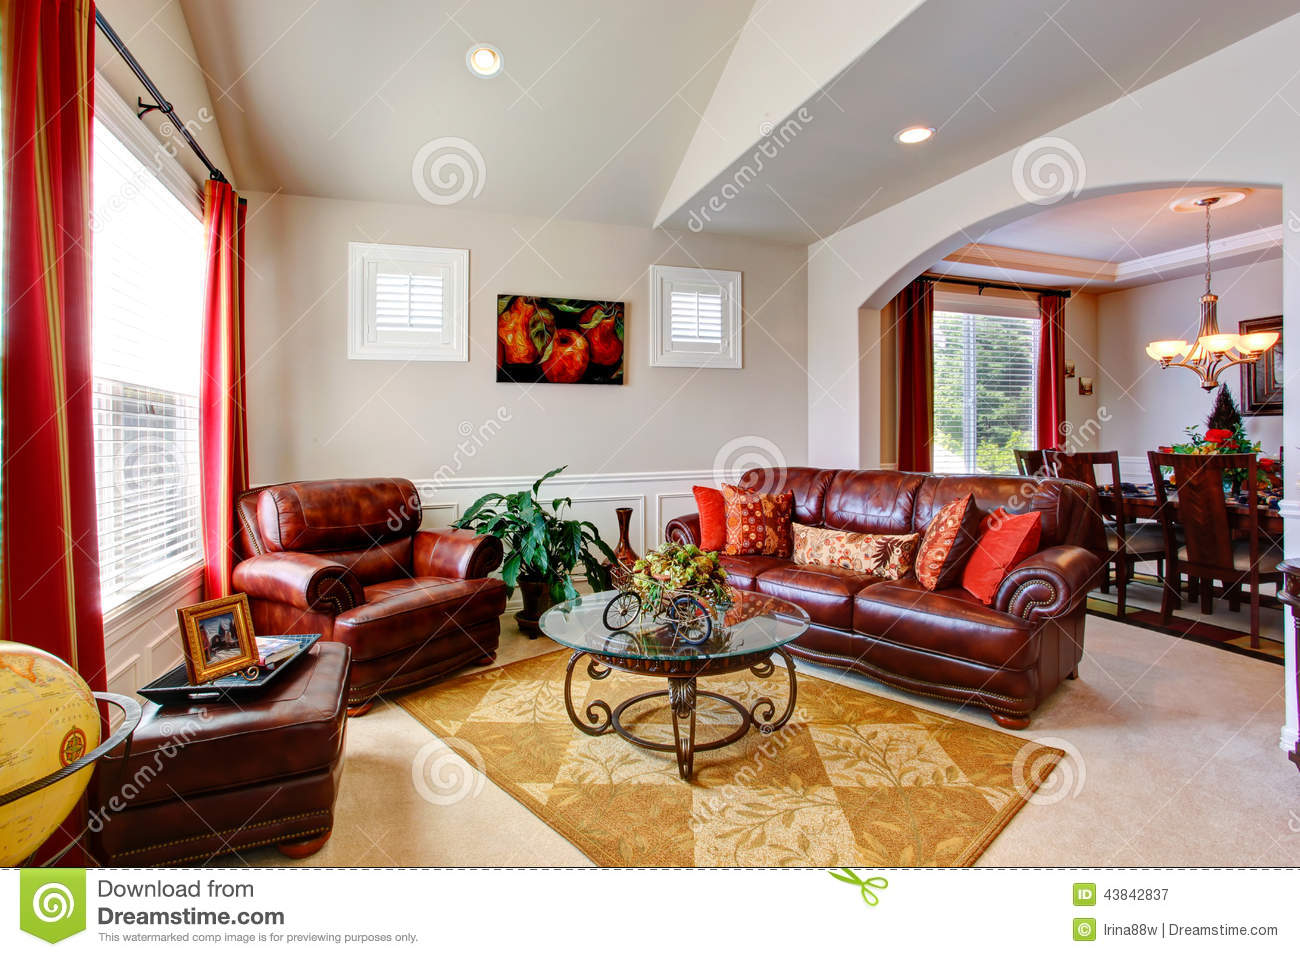 luxury house interior living room with leather couches stock photo image 43842837. Black Bedroom Furniture Sets. Home Design Ideas